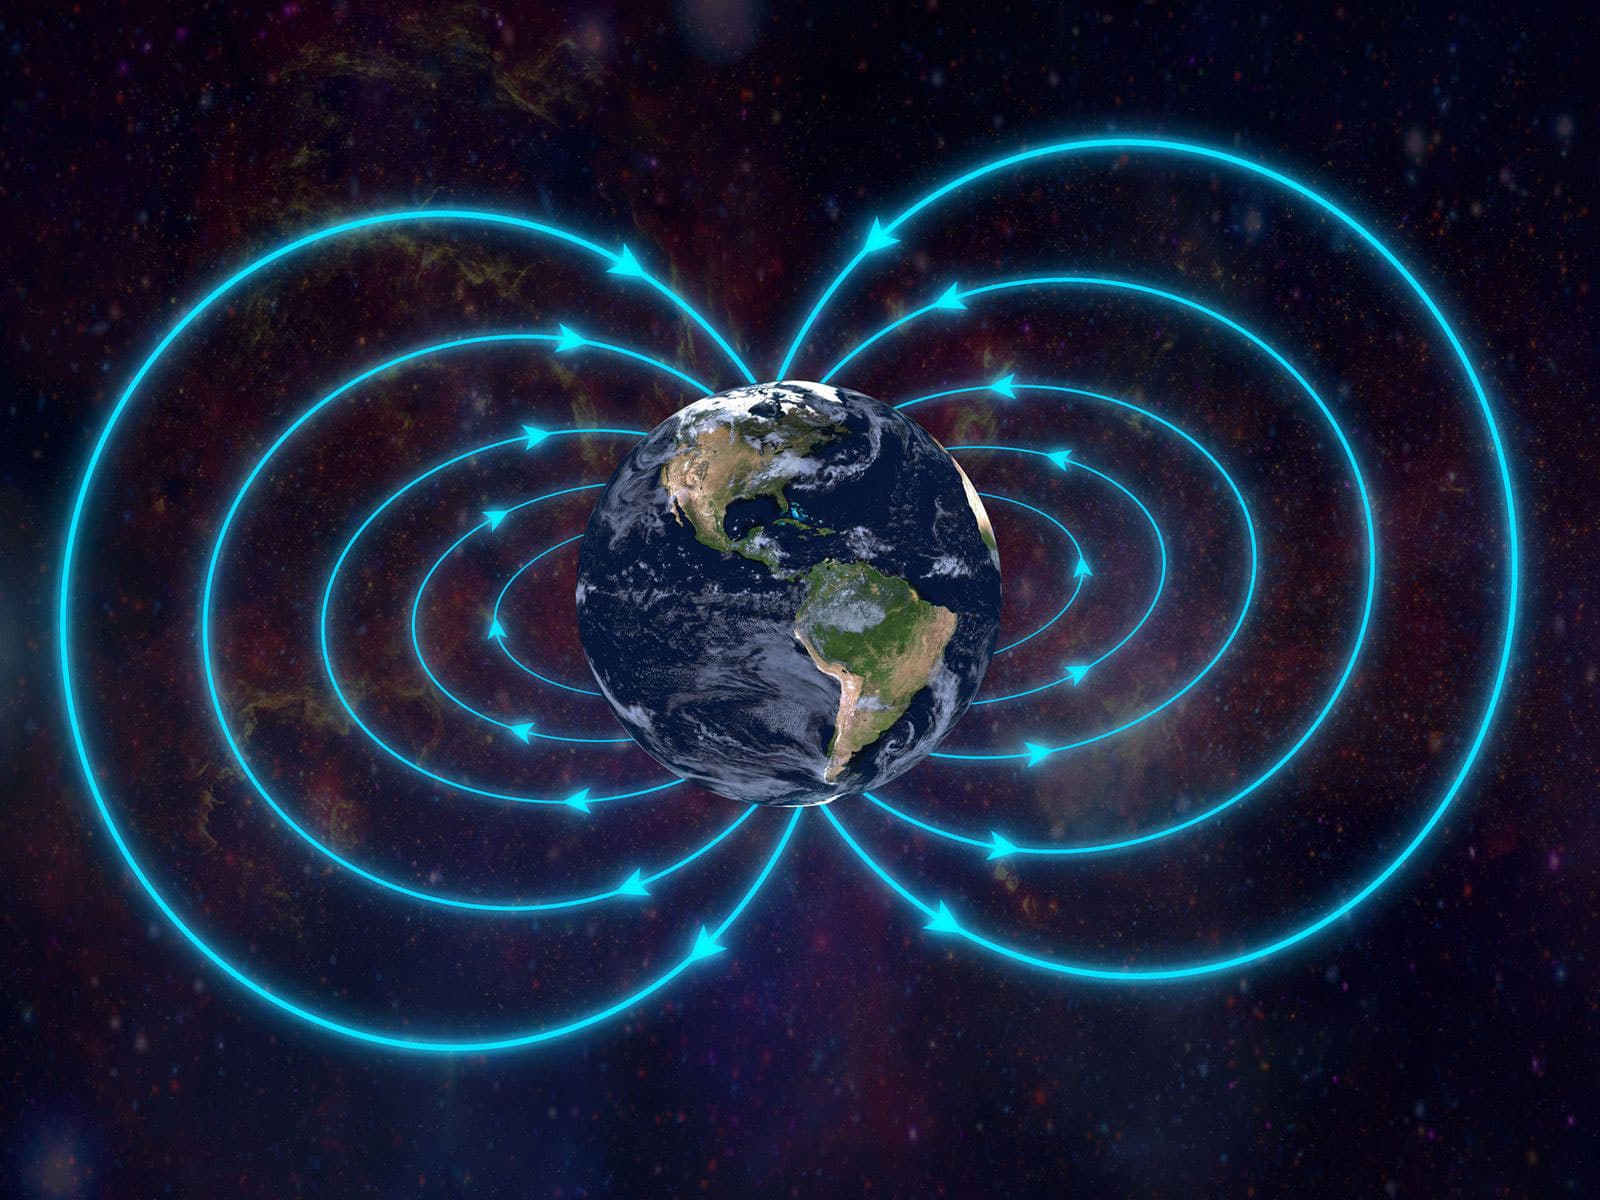 Earth's magnetic field changes 10 times faster than previously thought